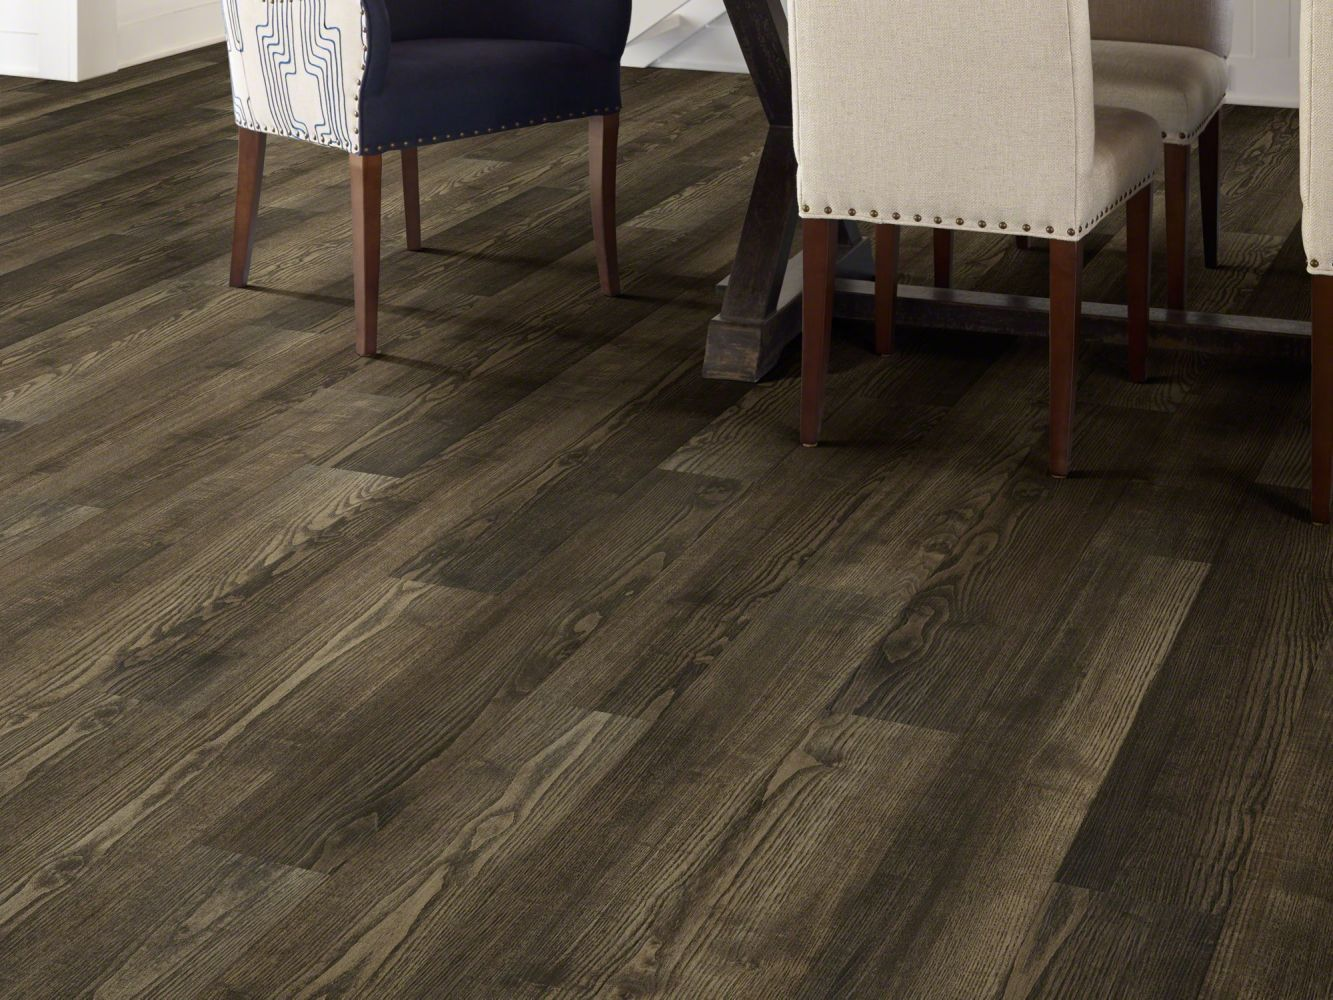 Shaw Floors Vinyl Residential Three Rivers 12 Golden Triangle 07008_0881V